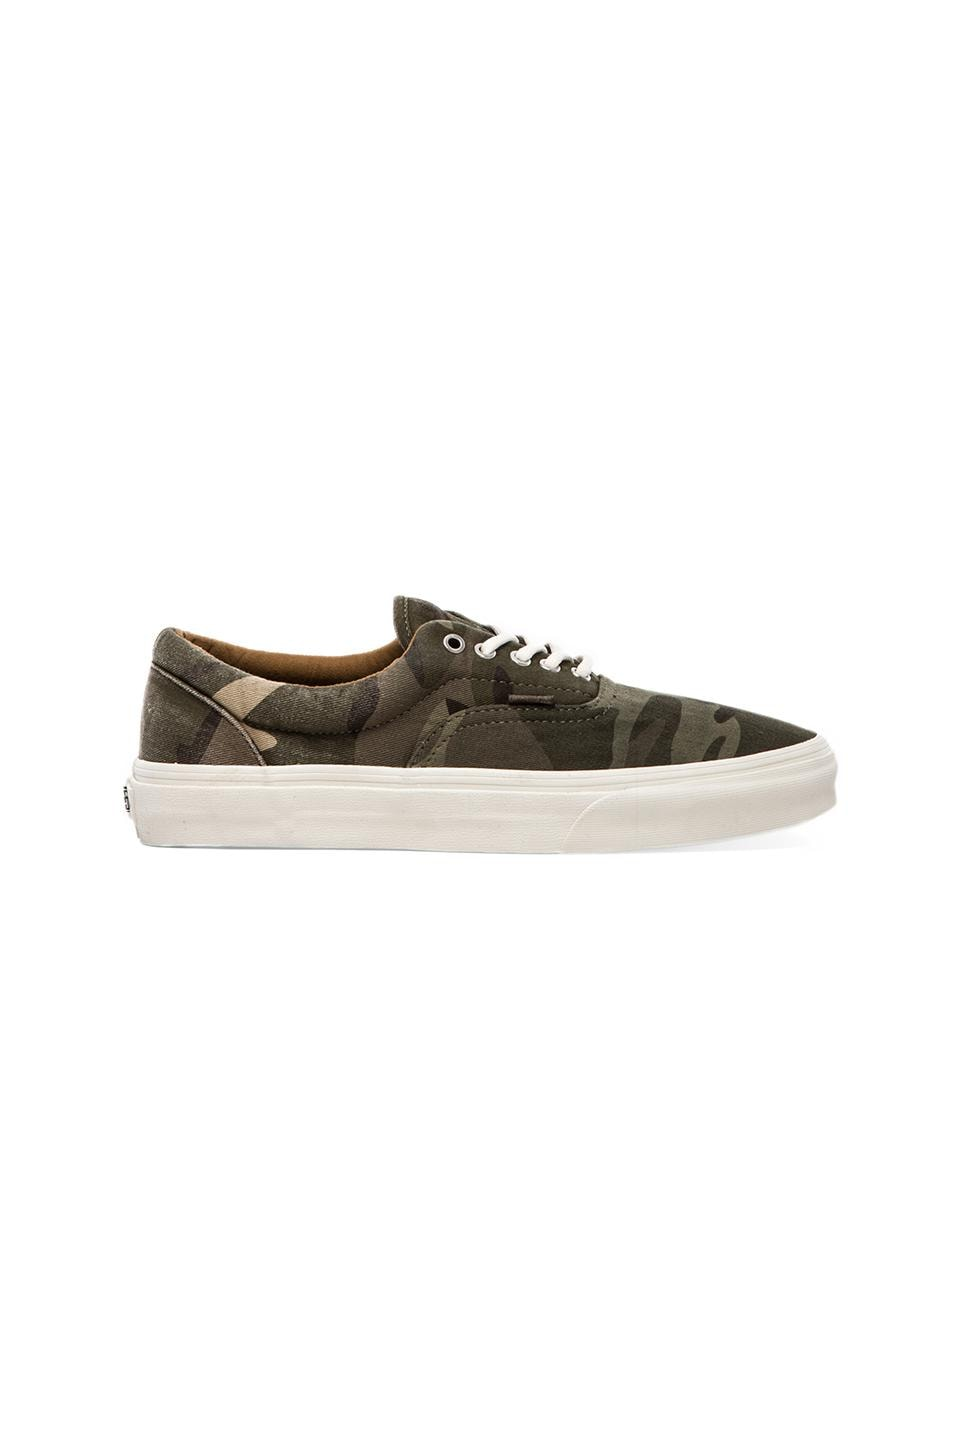 Vans California Era Ombre Dyed Camo in Olive Night